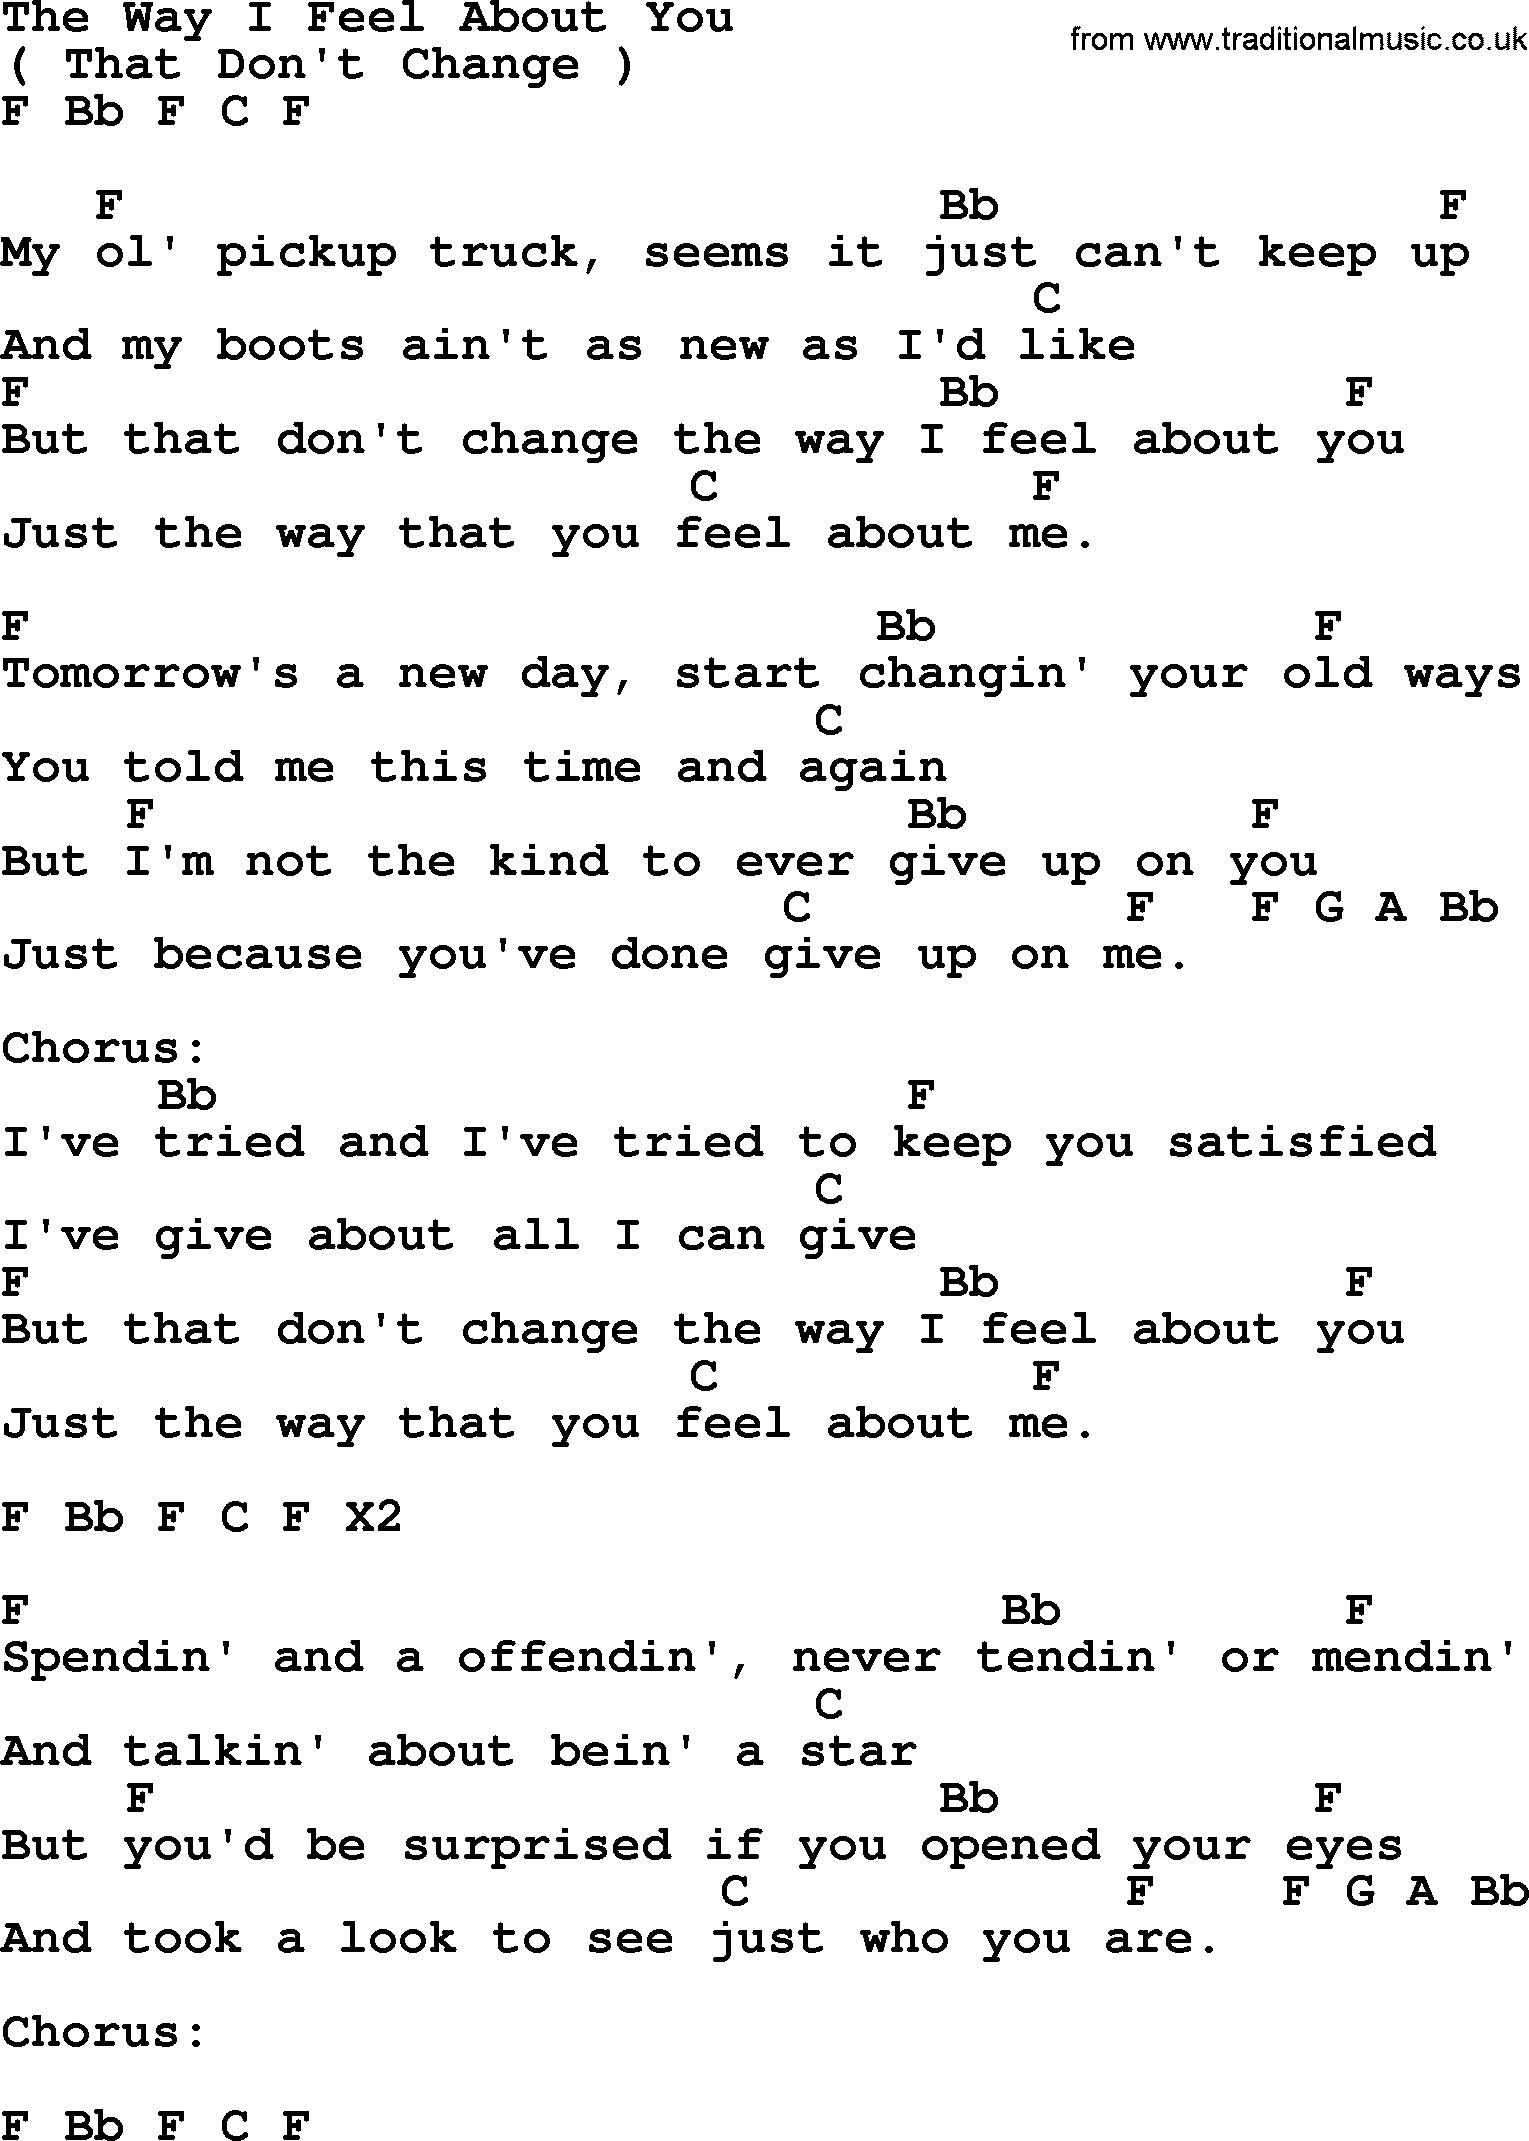 The way i feel about you by george strait lyrics and chords george strait song the way i feel about you lyrics and chords hexwebz Image collections